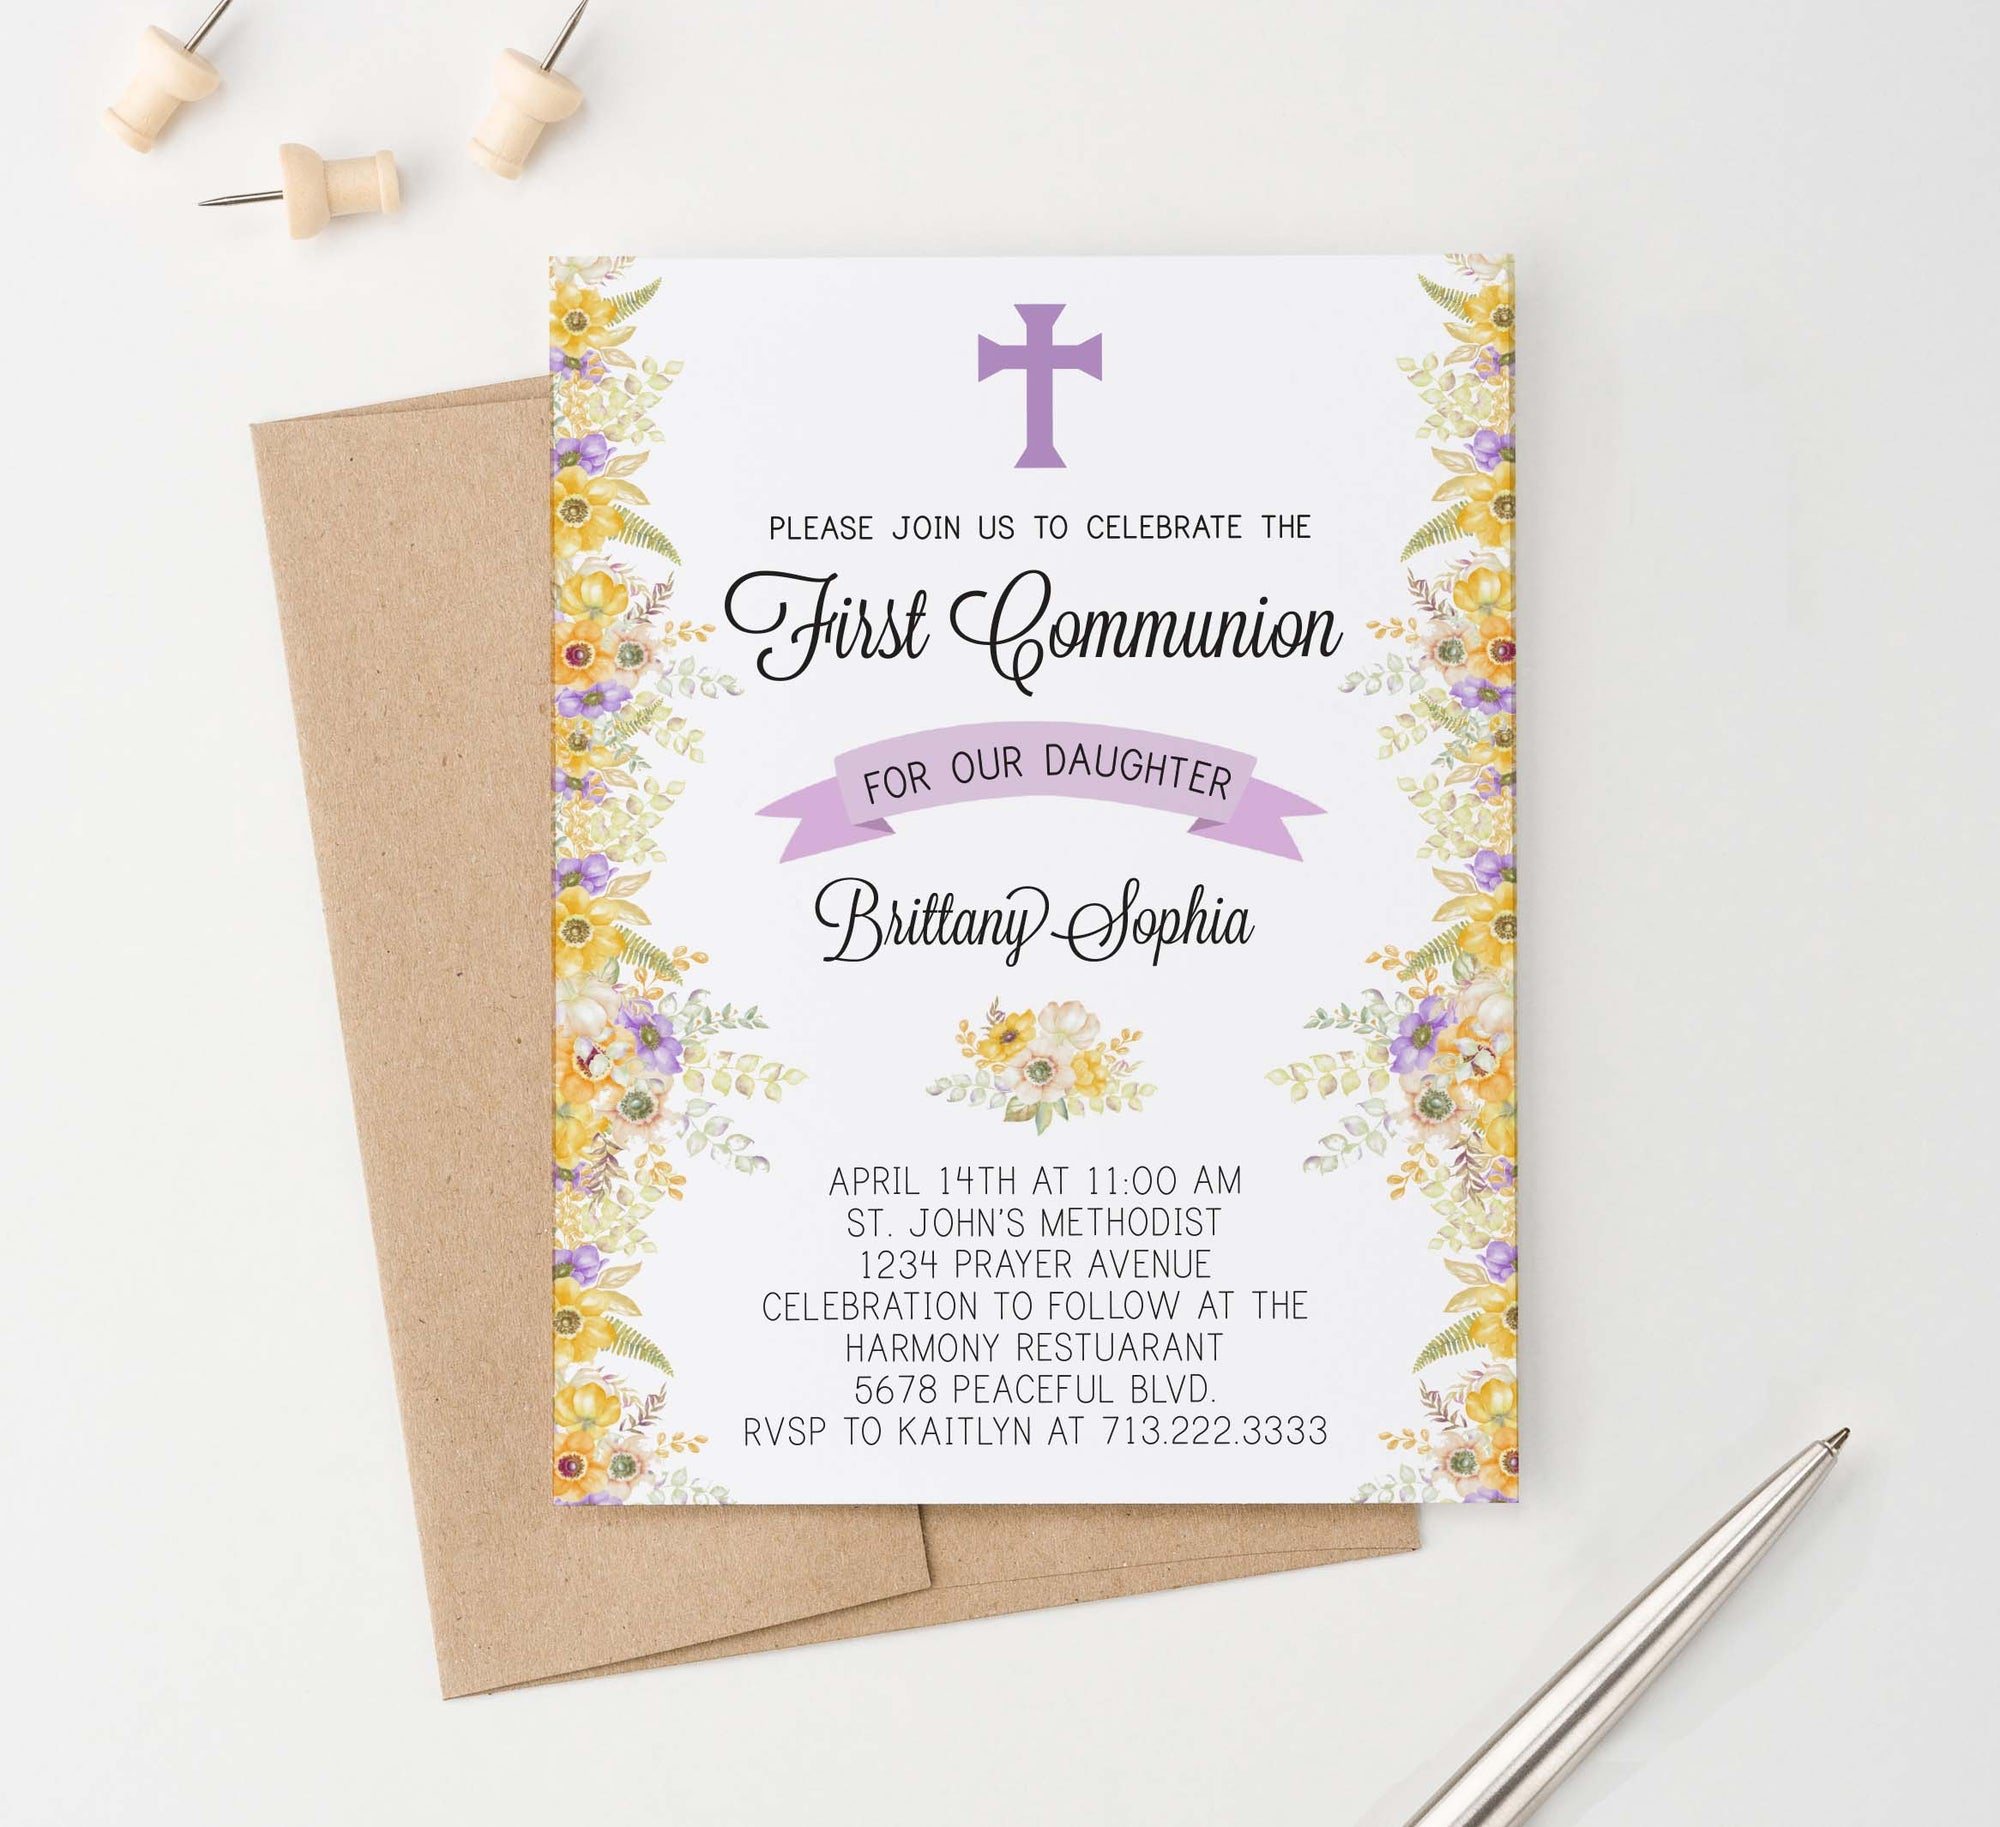 FCI014 personalized first communion invitations with yellow and purple florals flowers elegant